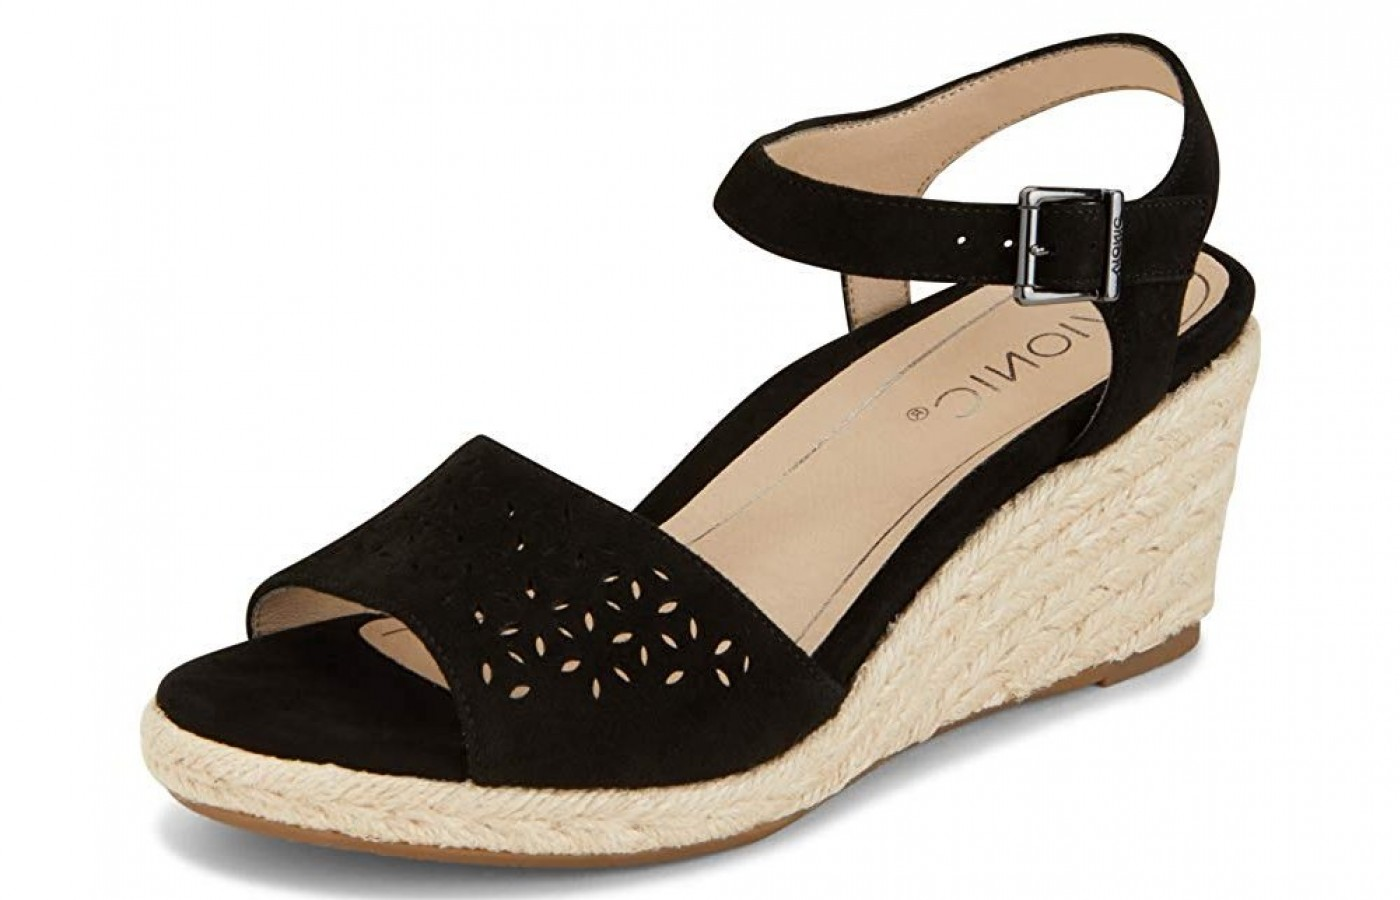 Vionic Tulum Ariel is a stylish wedge sandal